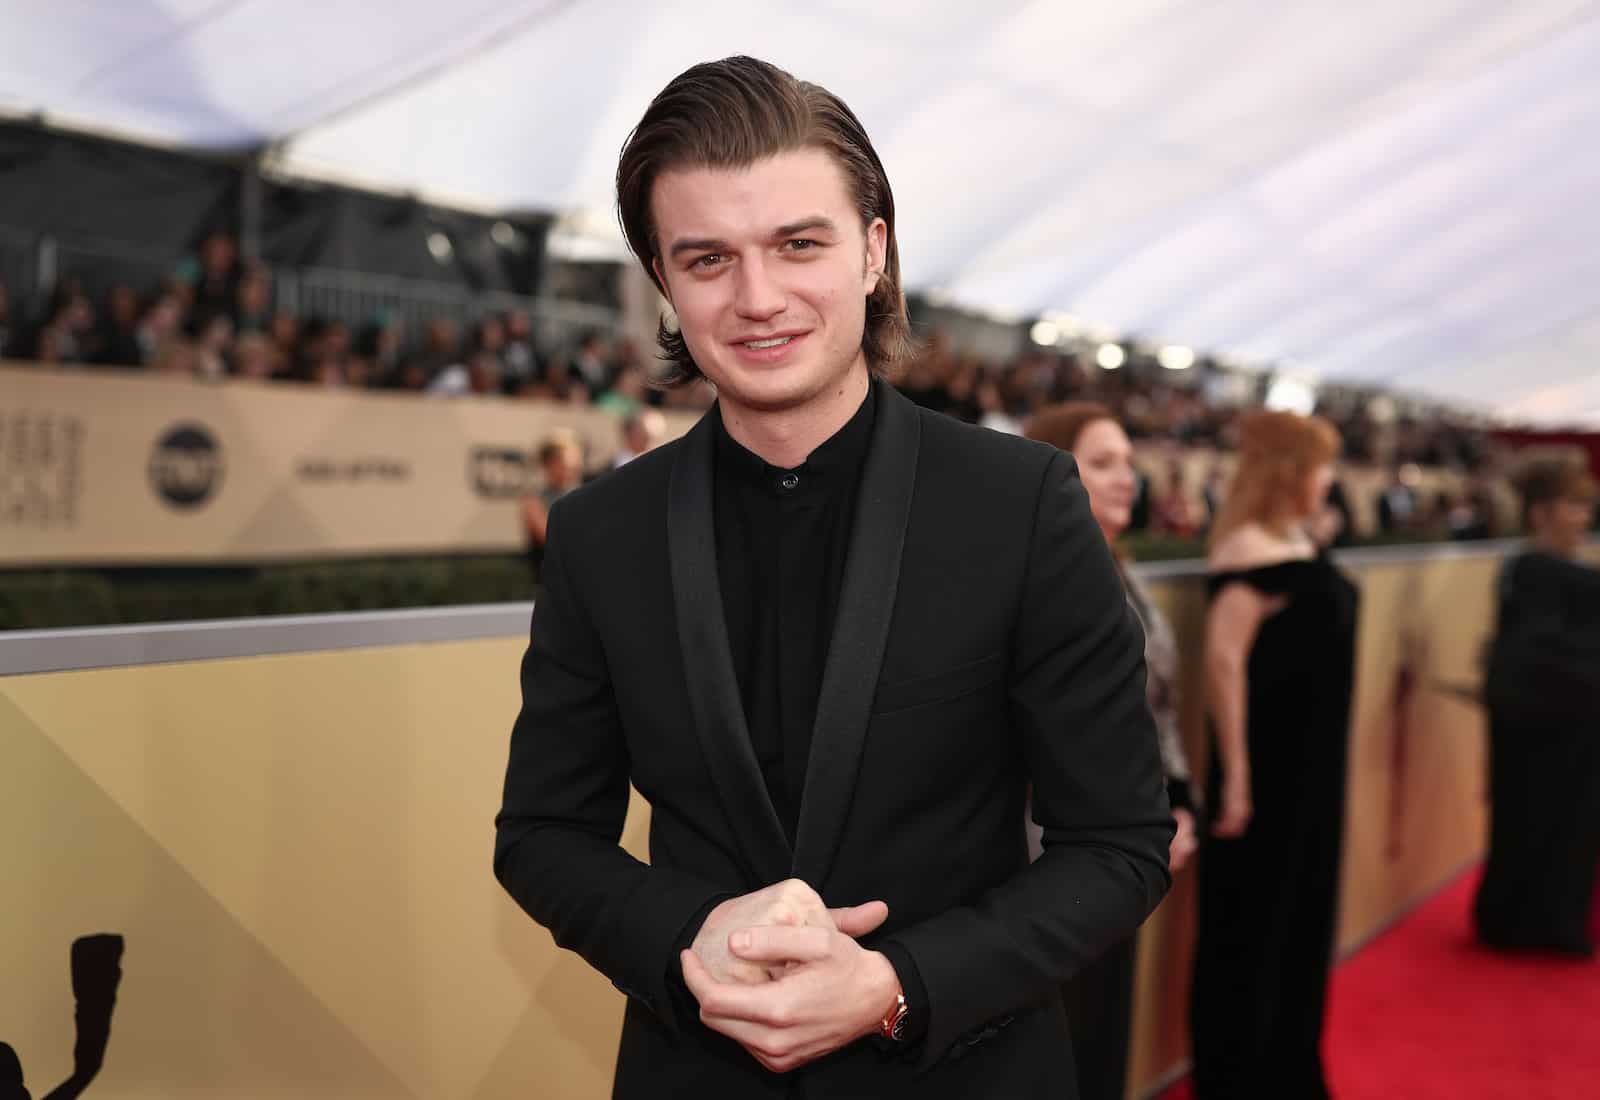 Stranger Things Joe Keery is the Breakout Star Everyone Wants to Know!